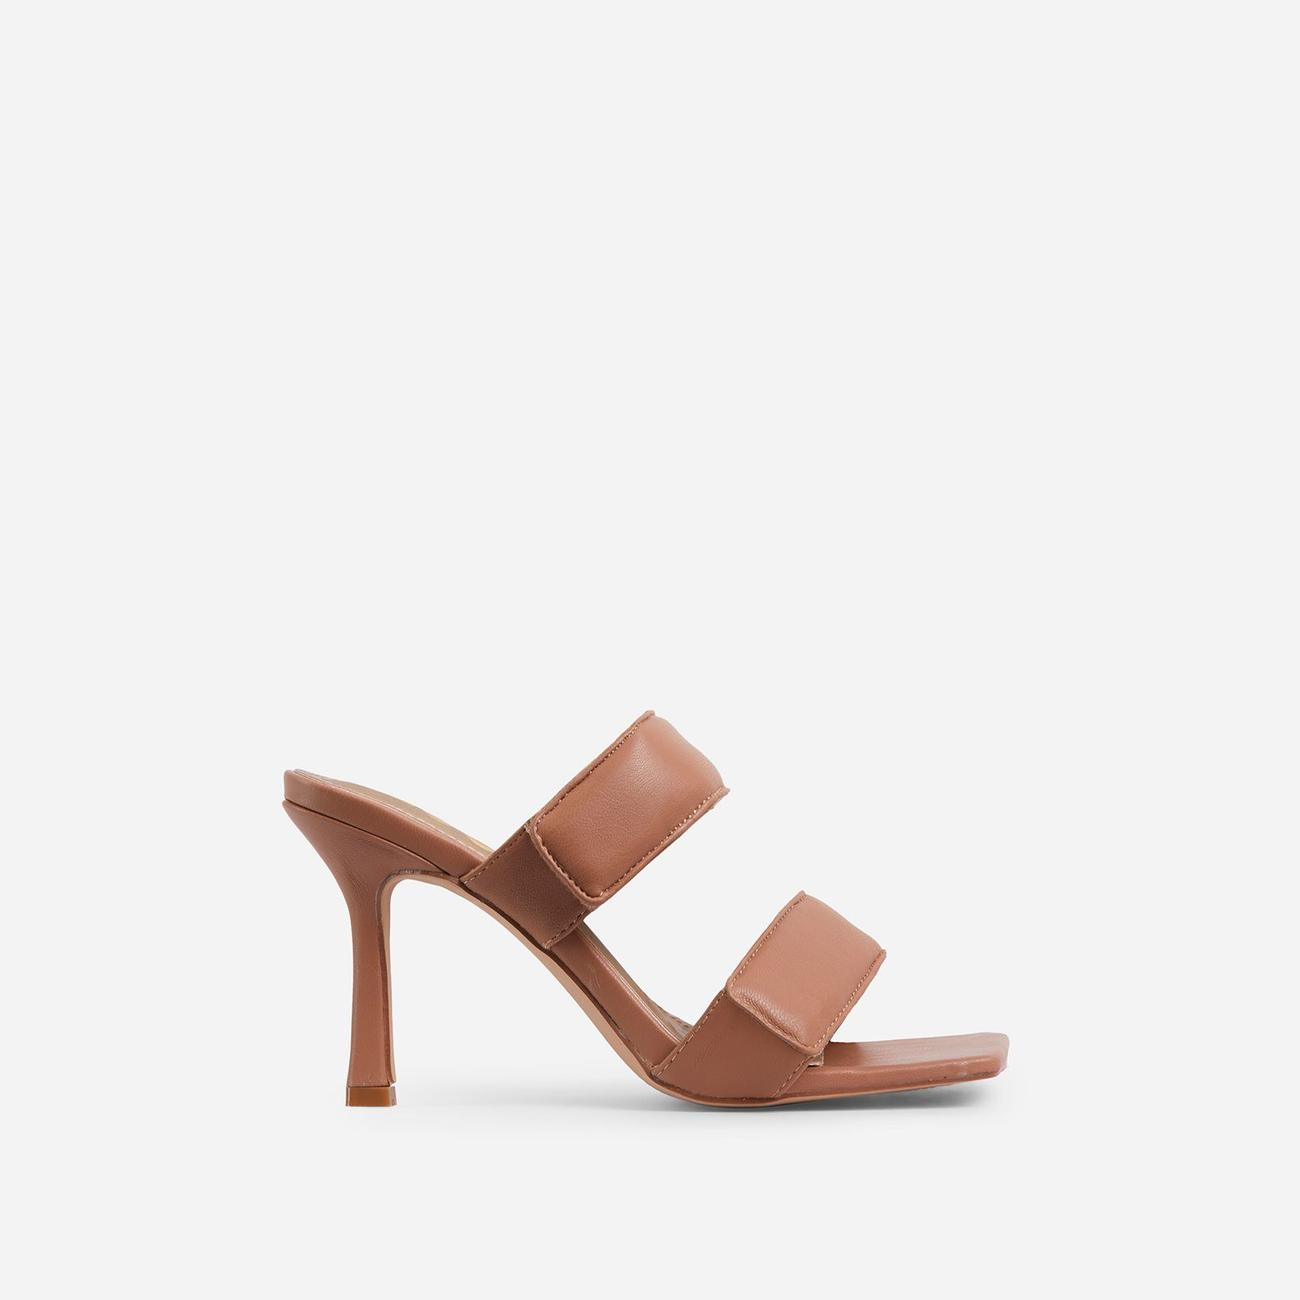 Thought-So Padded Strap Square Toe Heel Mule In Tan Brown Faux Leather Image 1